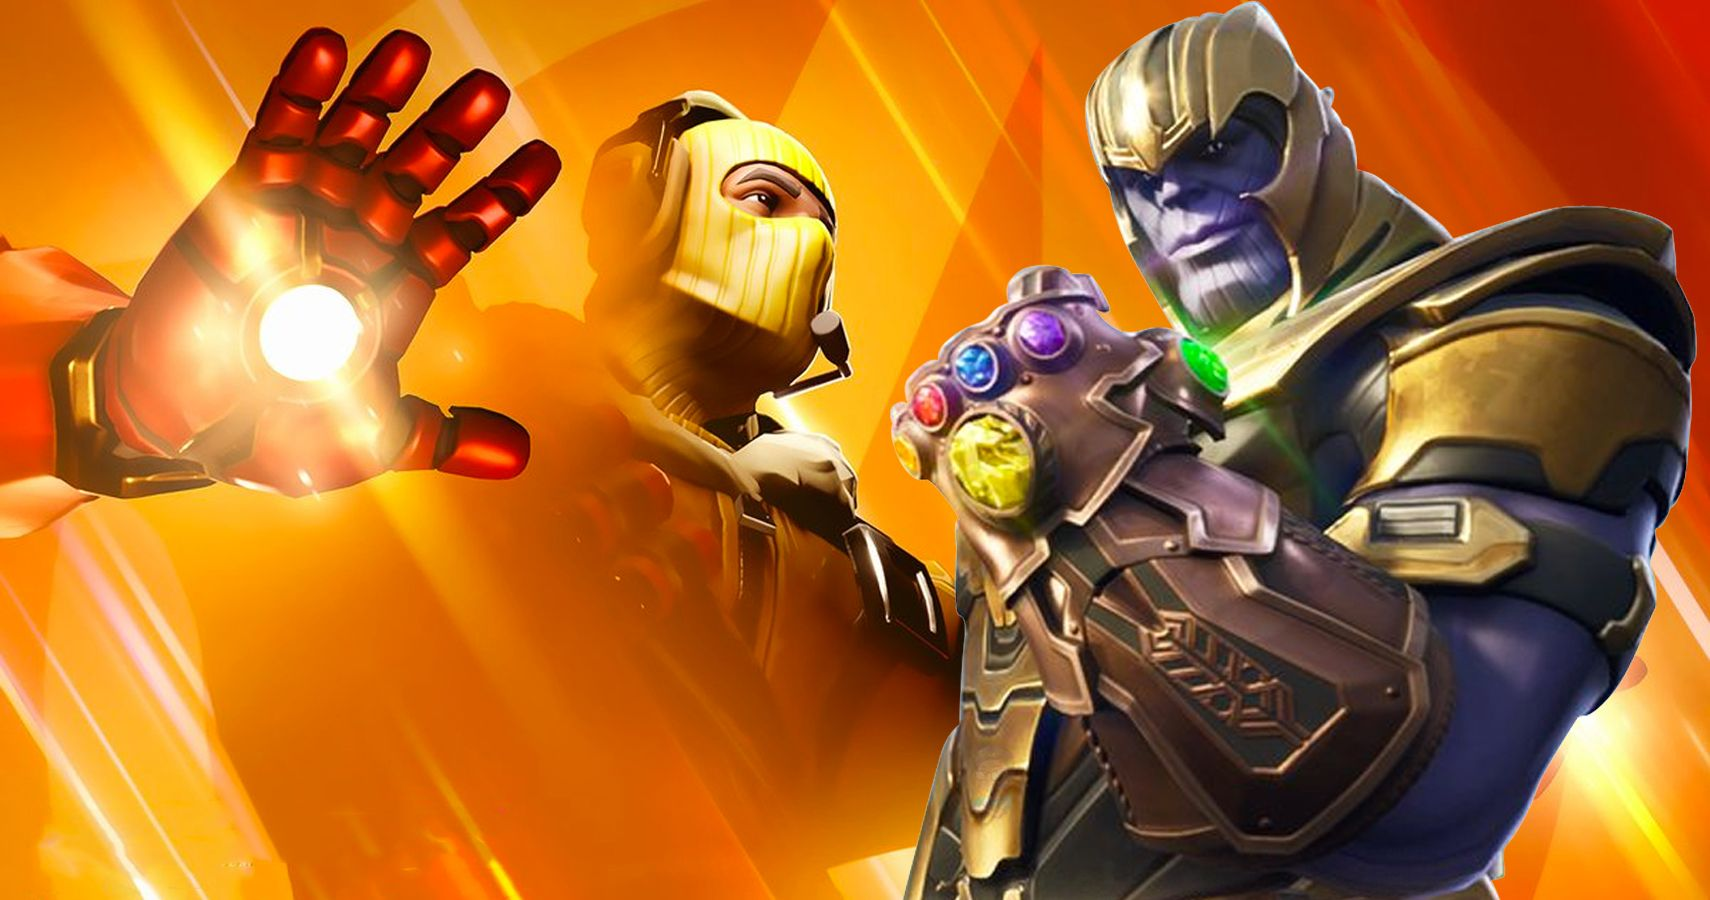 What The Fortnite/Avengers: Endgame Crossover Could Bring To The Game